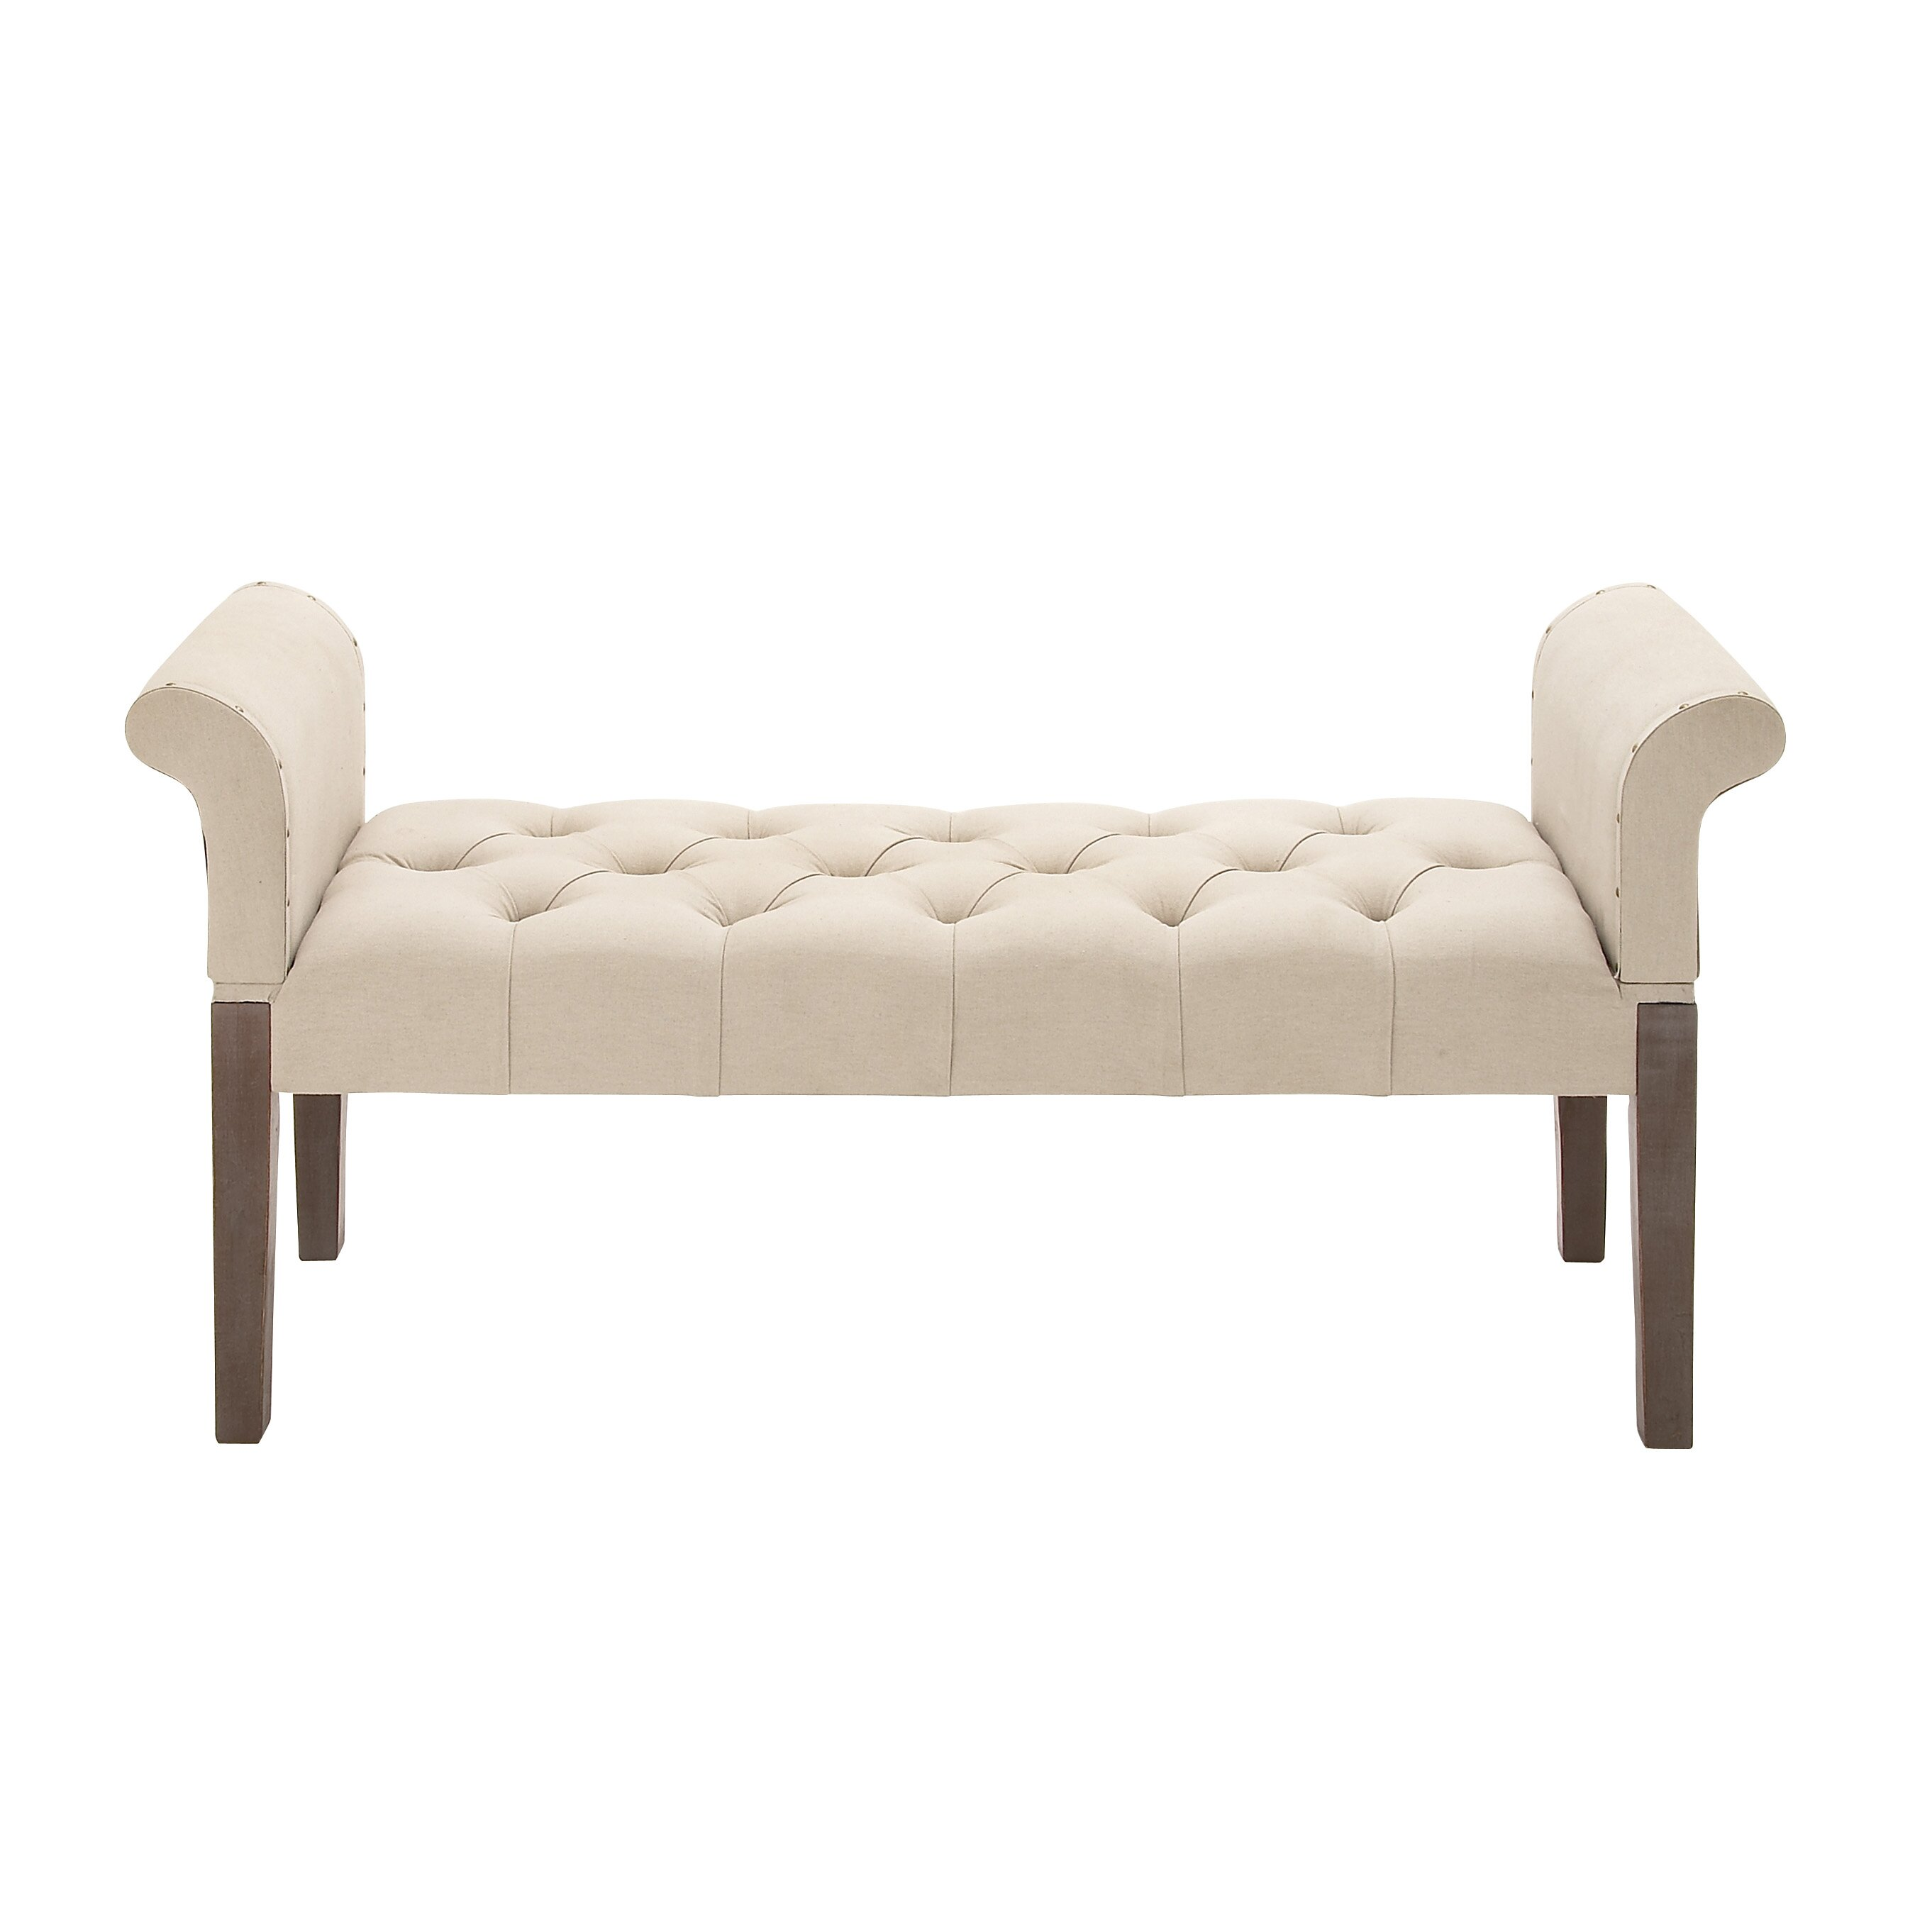 fortable and Captivating Upholstered Bedroom Bench